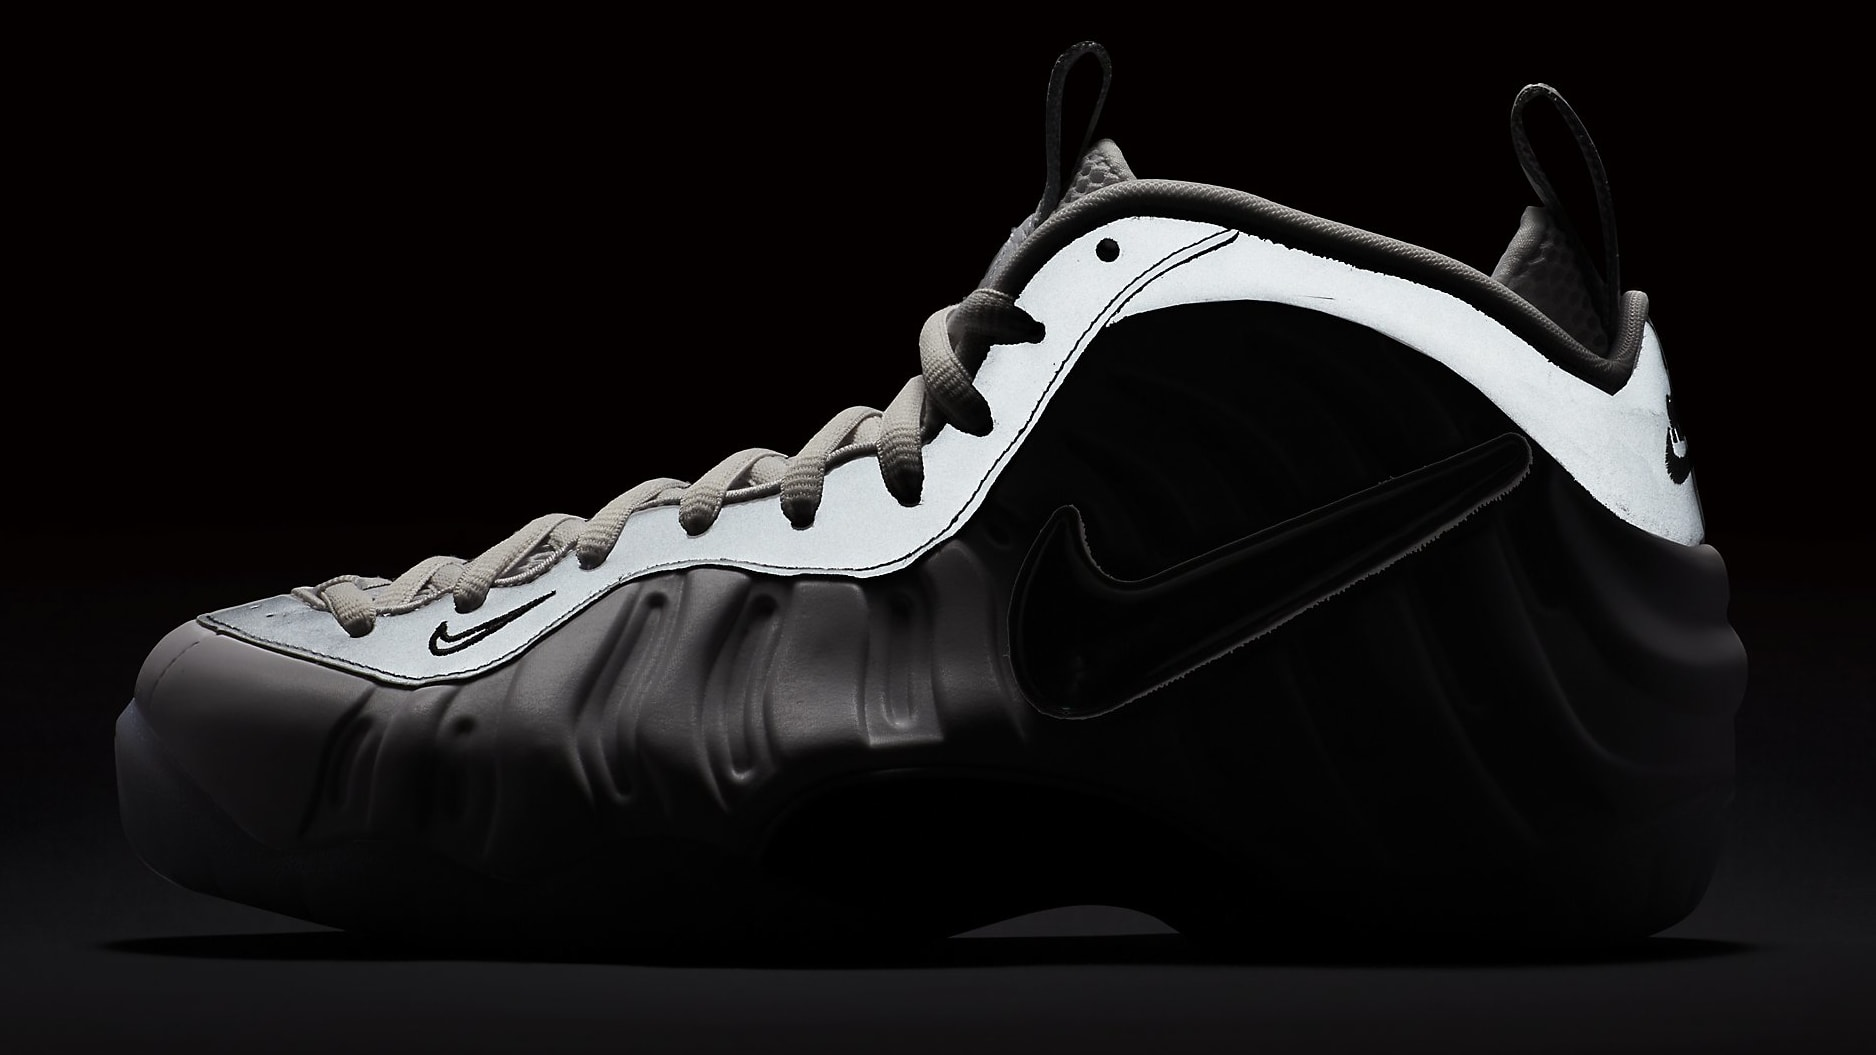 newest e80bd 1ebe6 The Nike Air Foamposite QS 'All Star' Releasing Feb 16 for ...